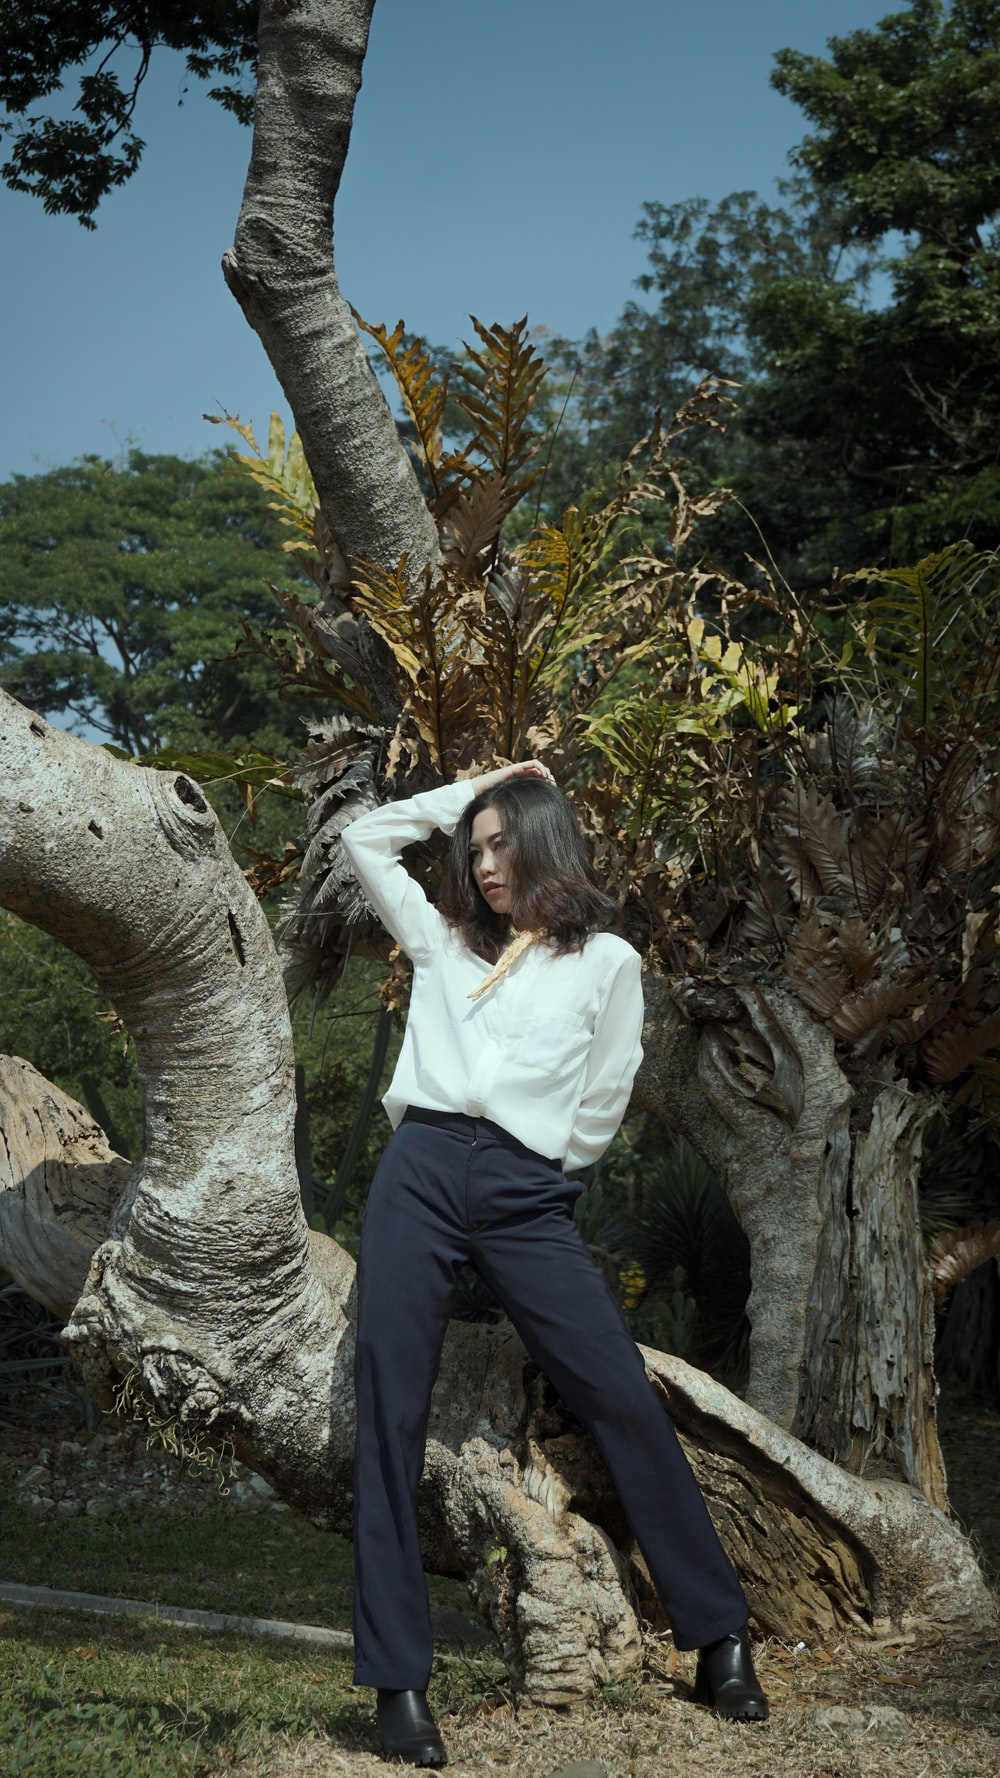 woman in white long sleeve shirt and blue pants standing beside brown tree during daytime